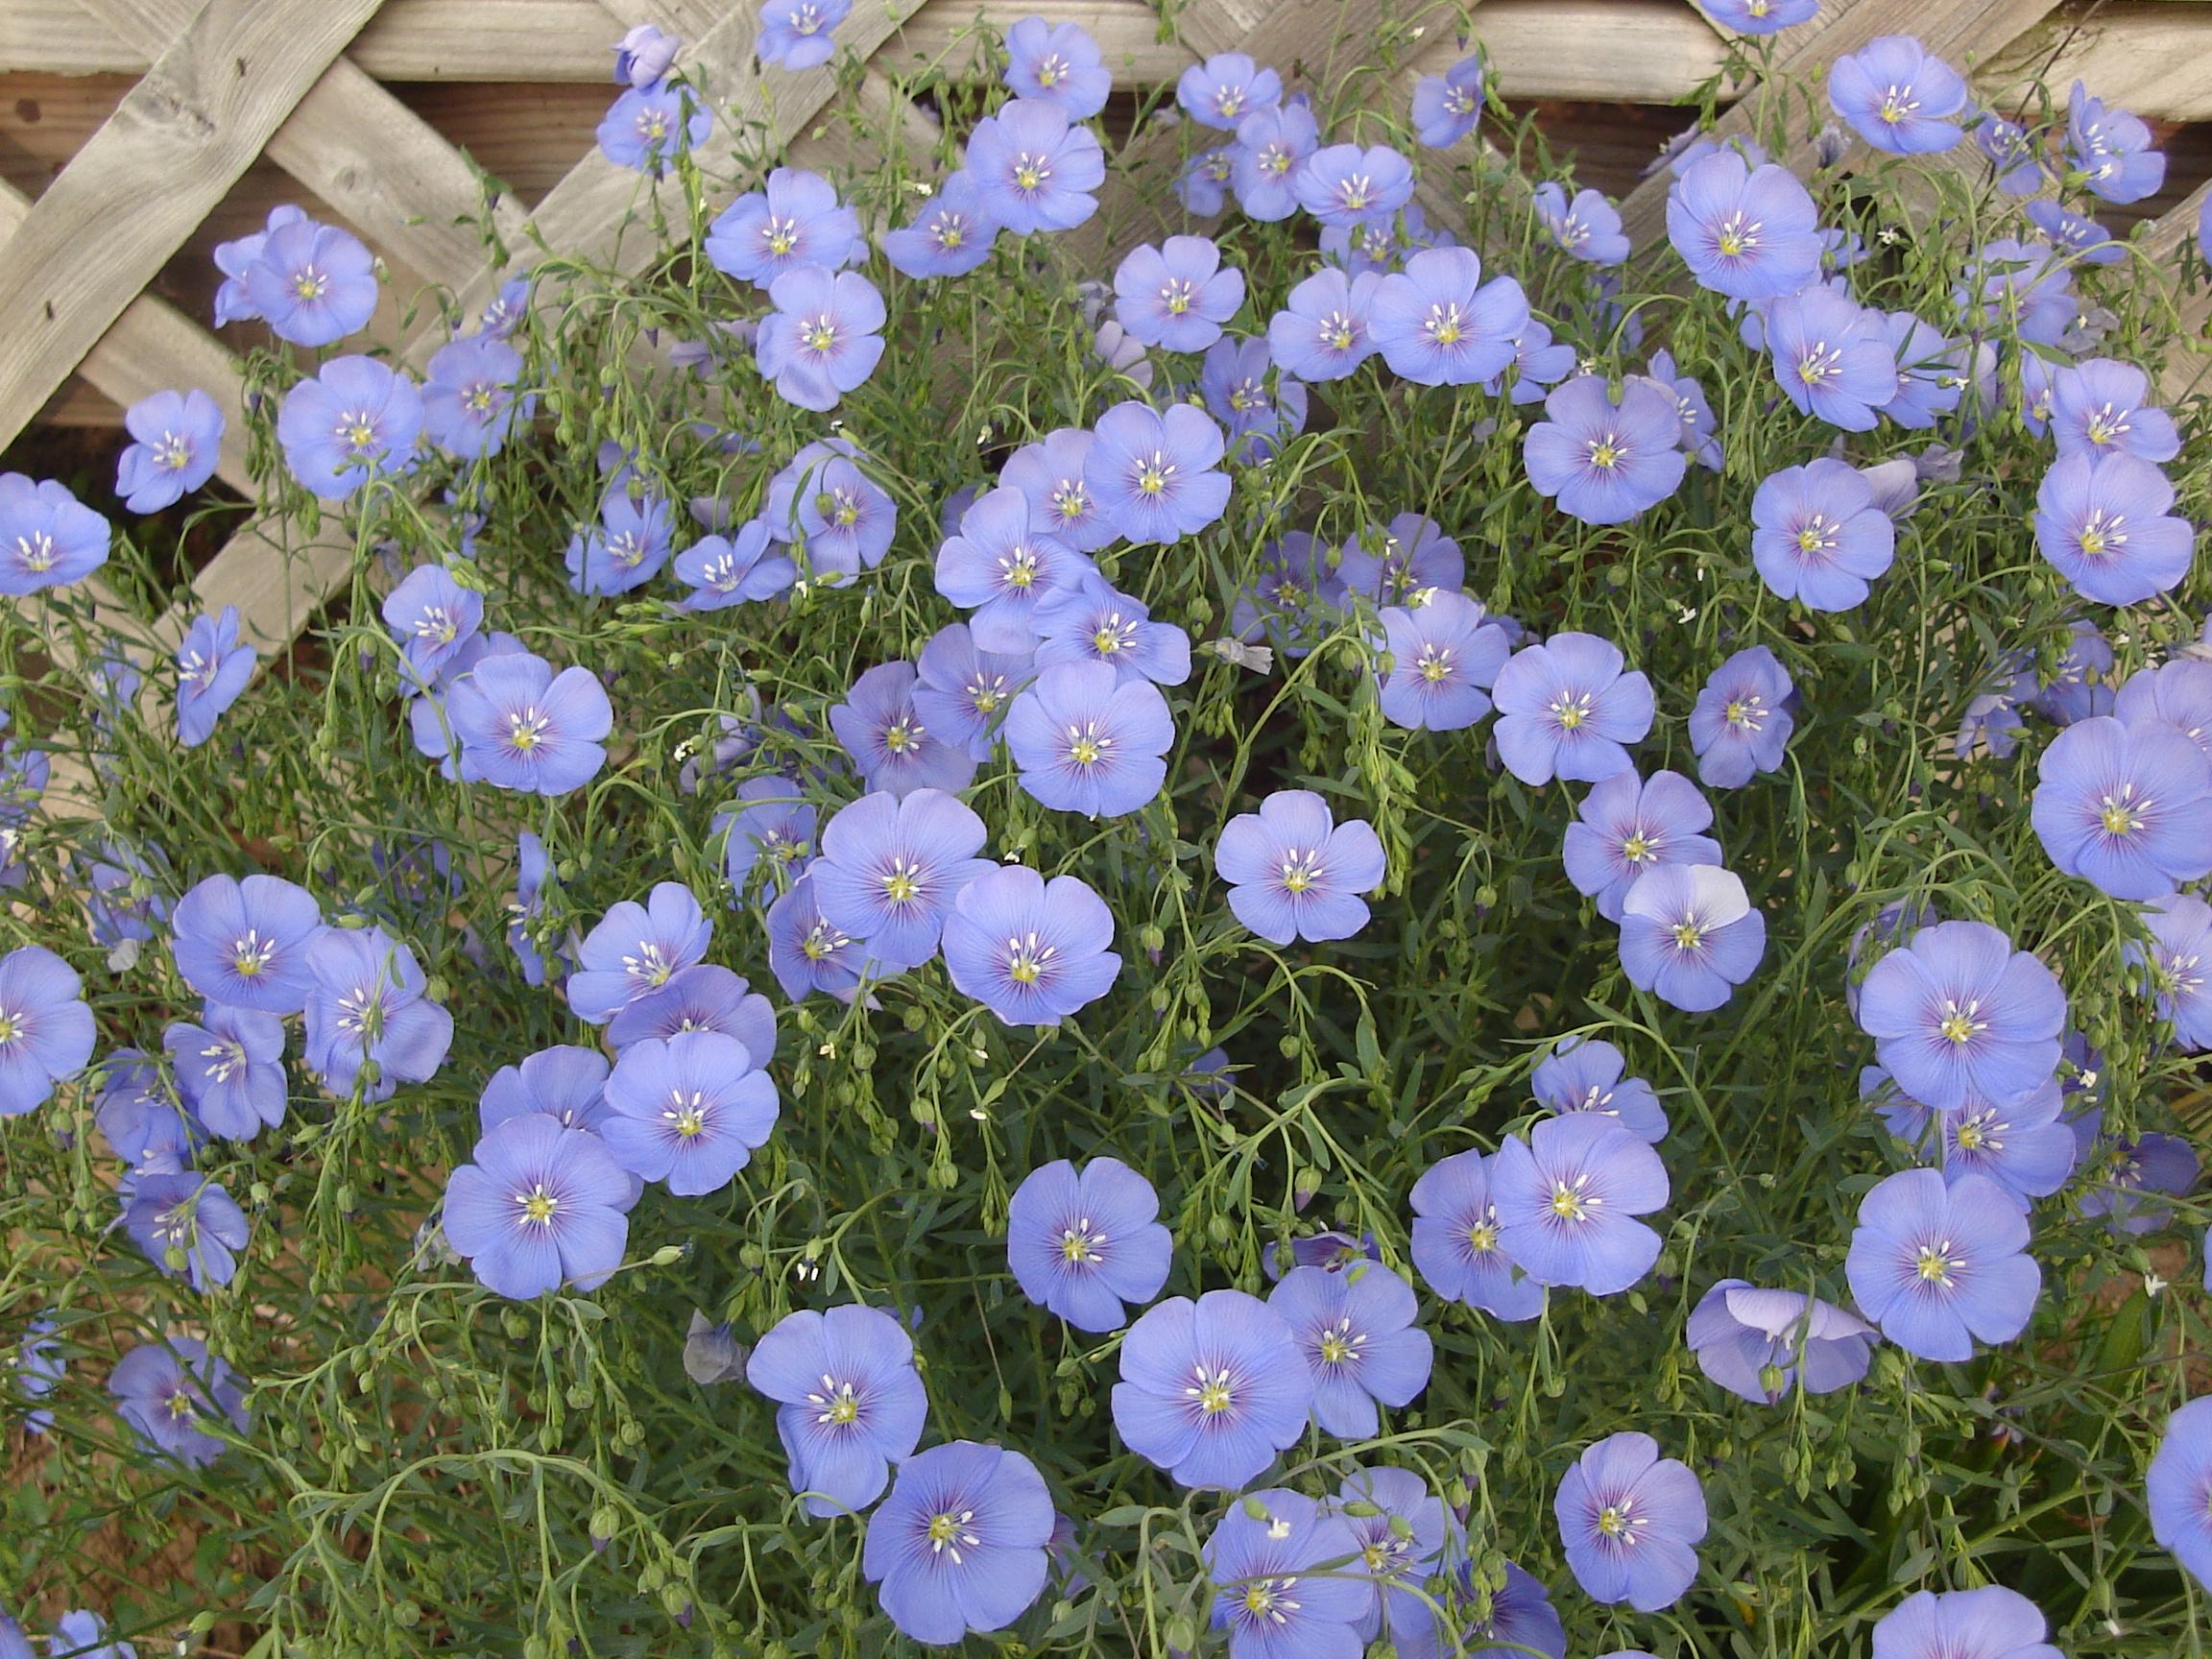 What is the blue flower perennial blue linum izmirmasajfo